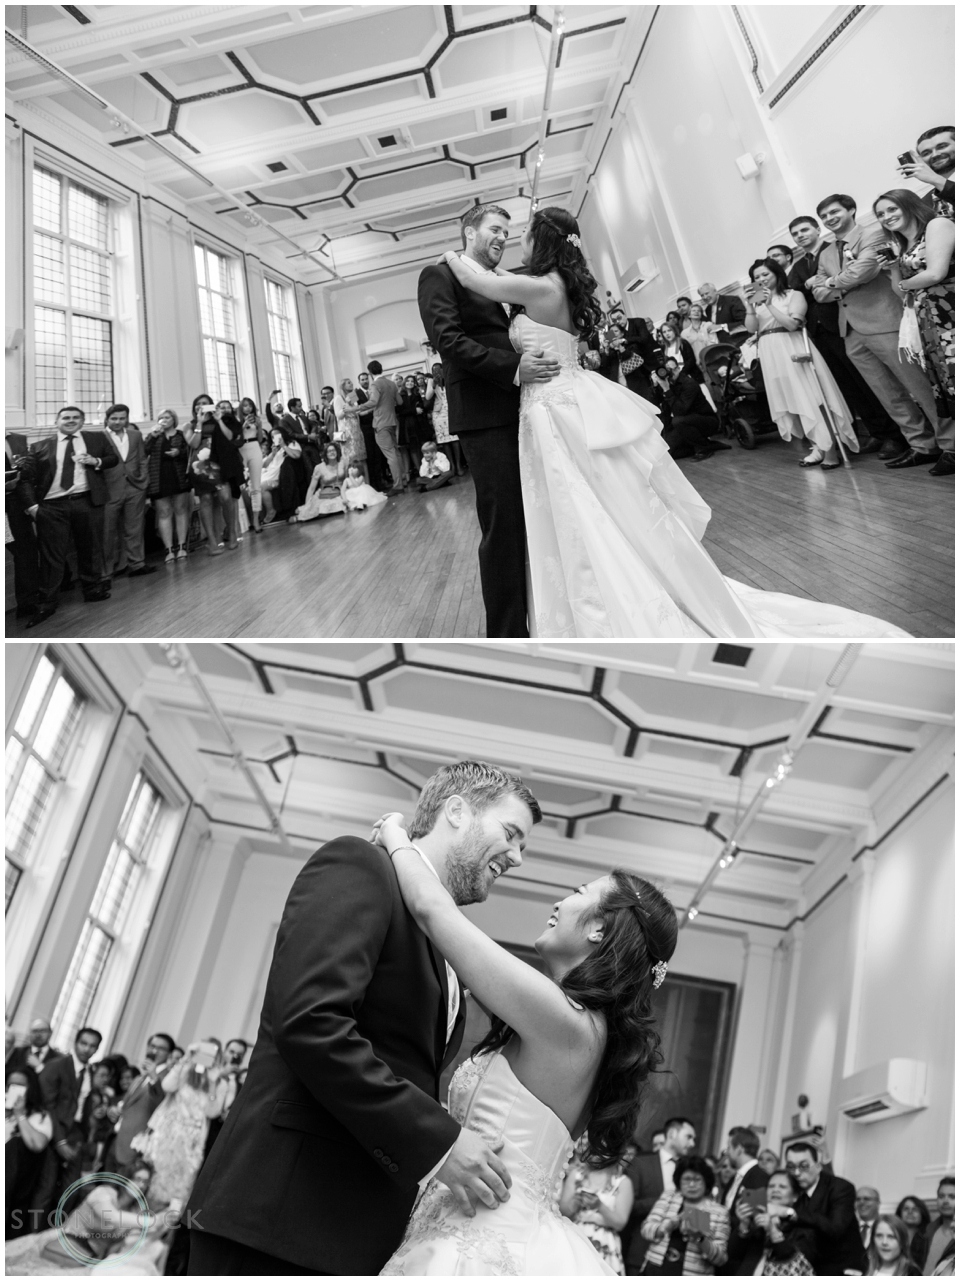 A bride and groom have their first dance at St Bride's Foundation in Fleet Street London